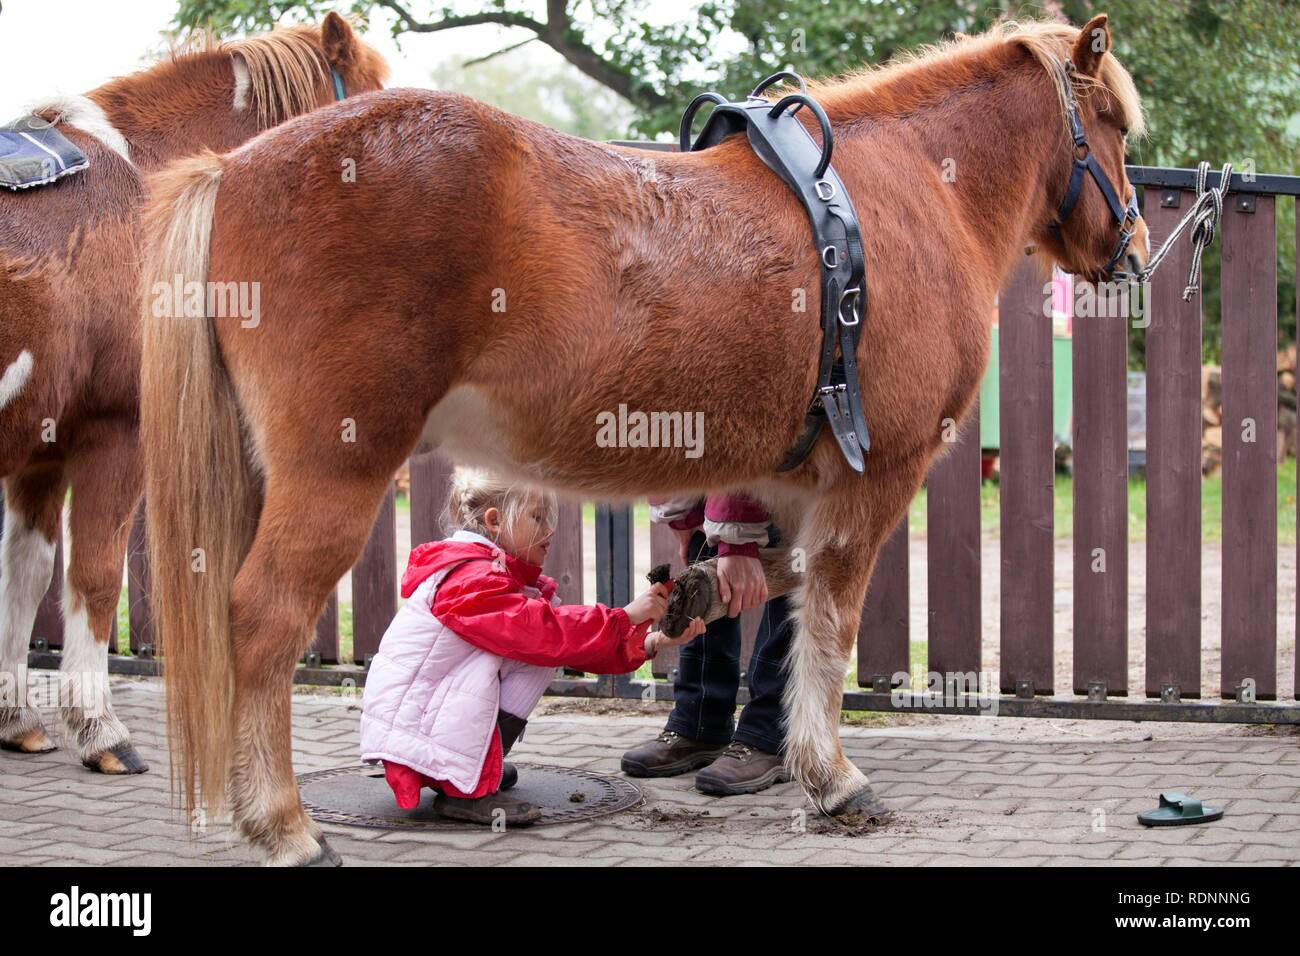 Young girl cleaning the hooves of a pony - Stock Image